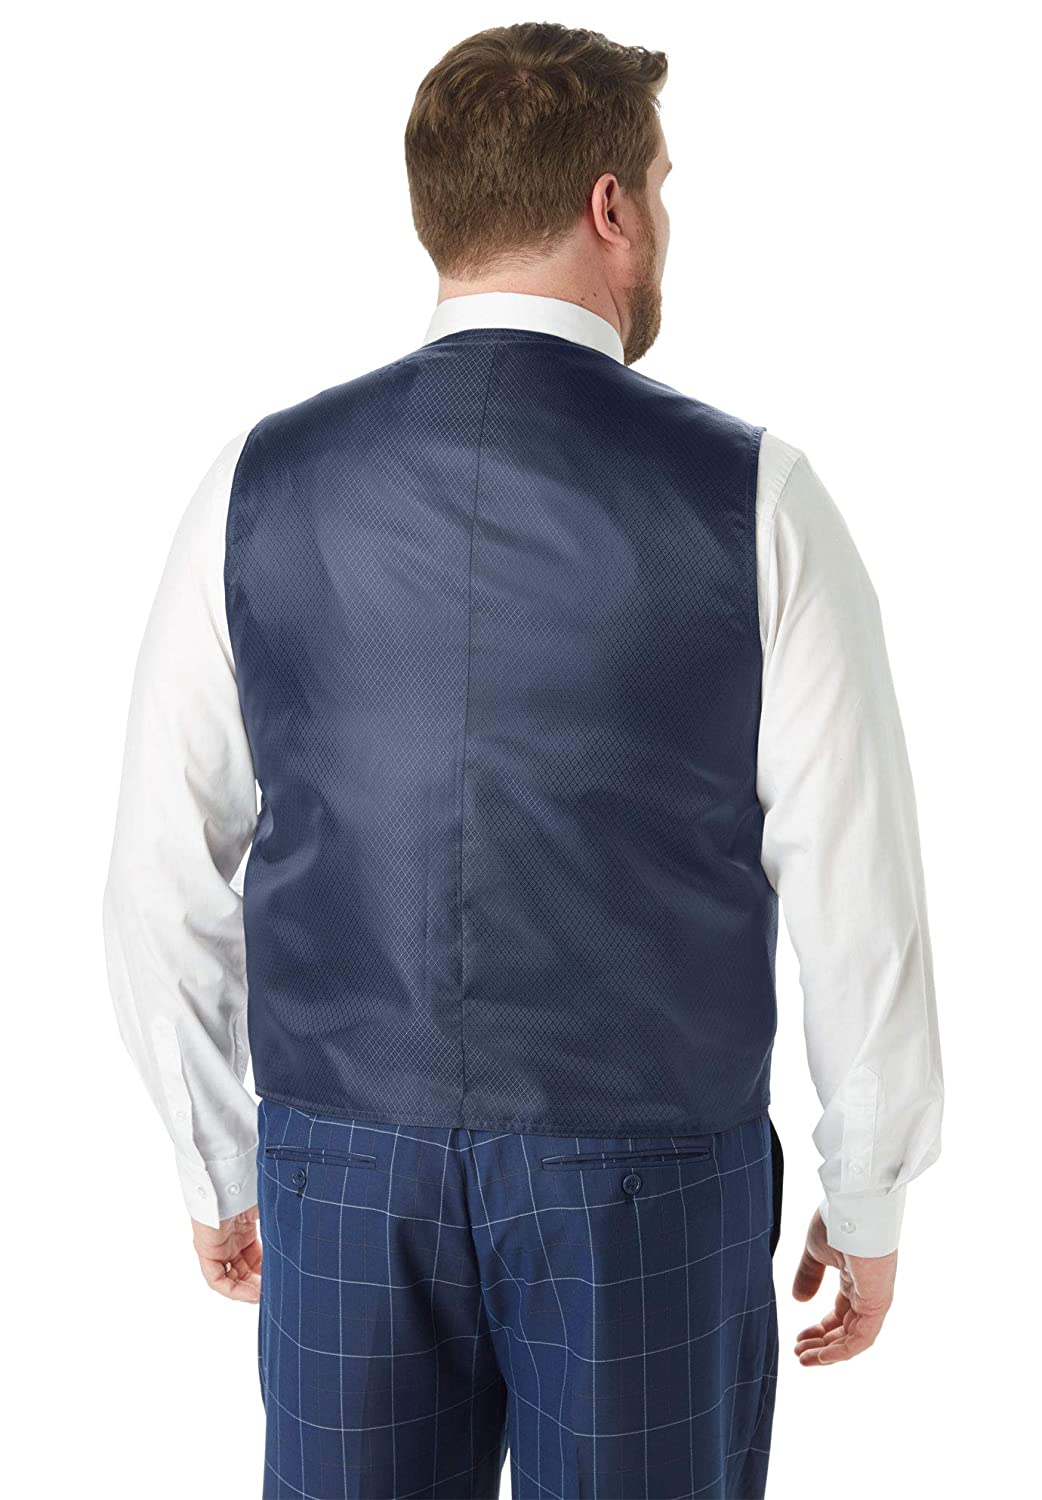 KingSize Signature Collection Mens Big /& Tall Signature Collection Easy Movement 5-Button Suit Vest New Navy Pindot Tall-56